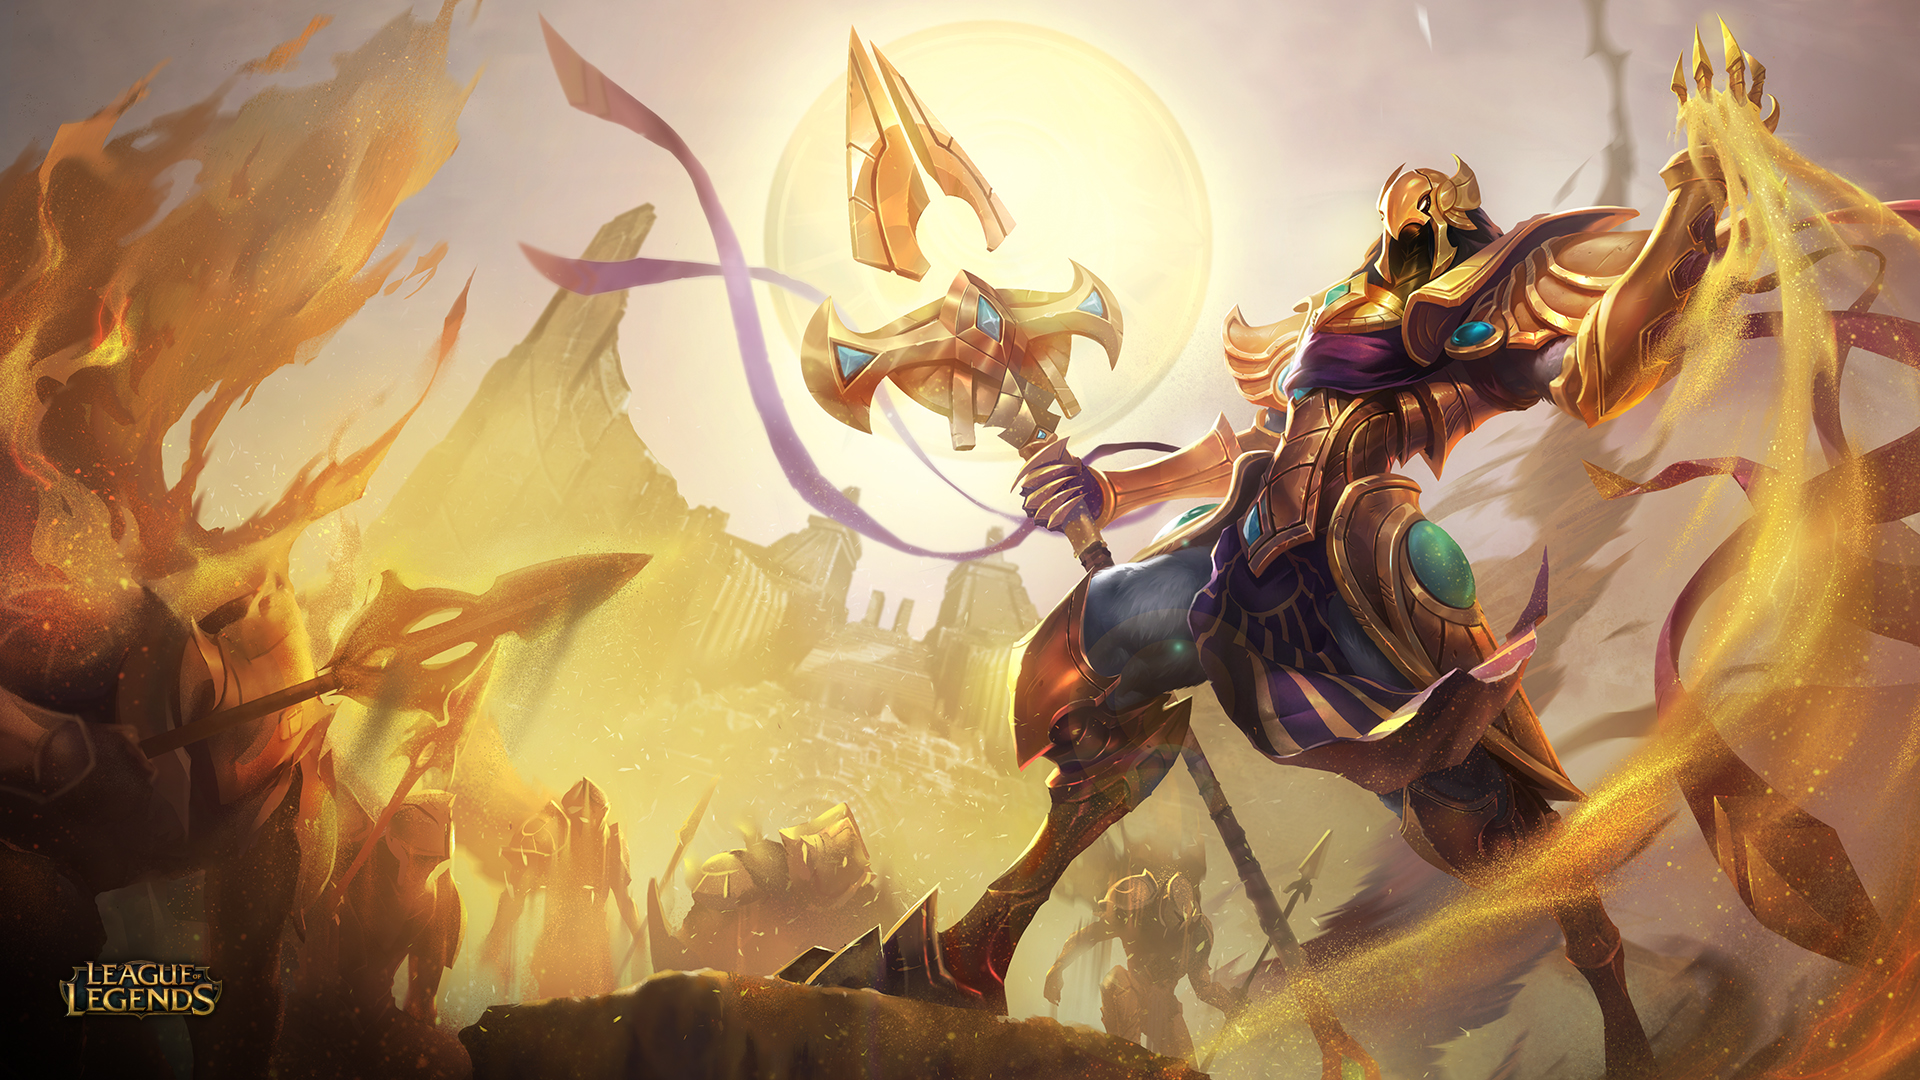 Azir O Imperador Das Areias é Revelado League Of Legends